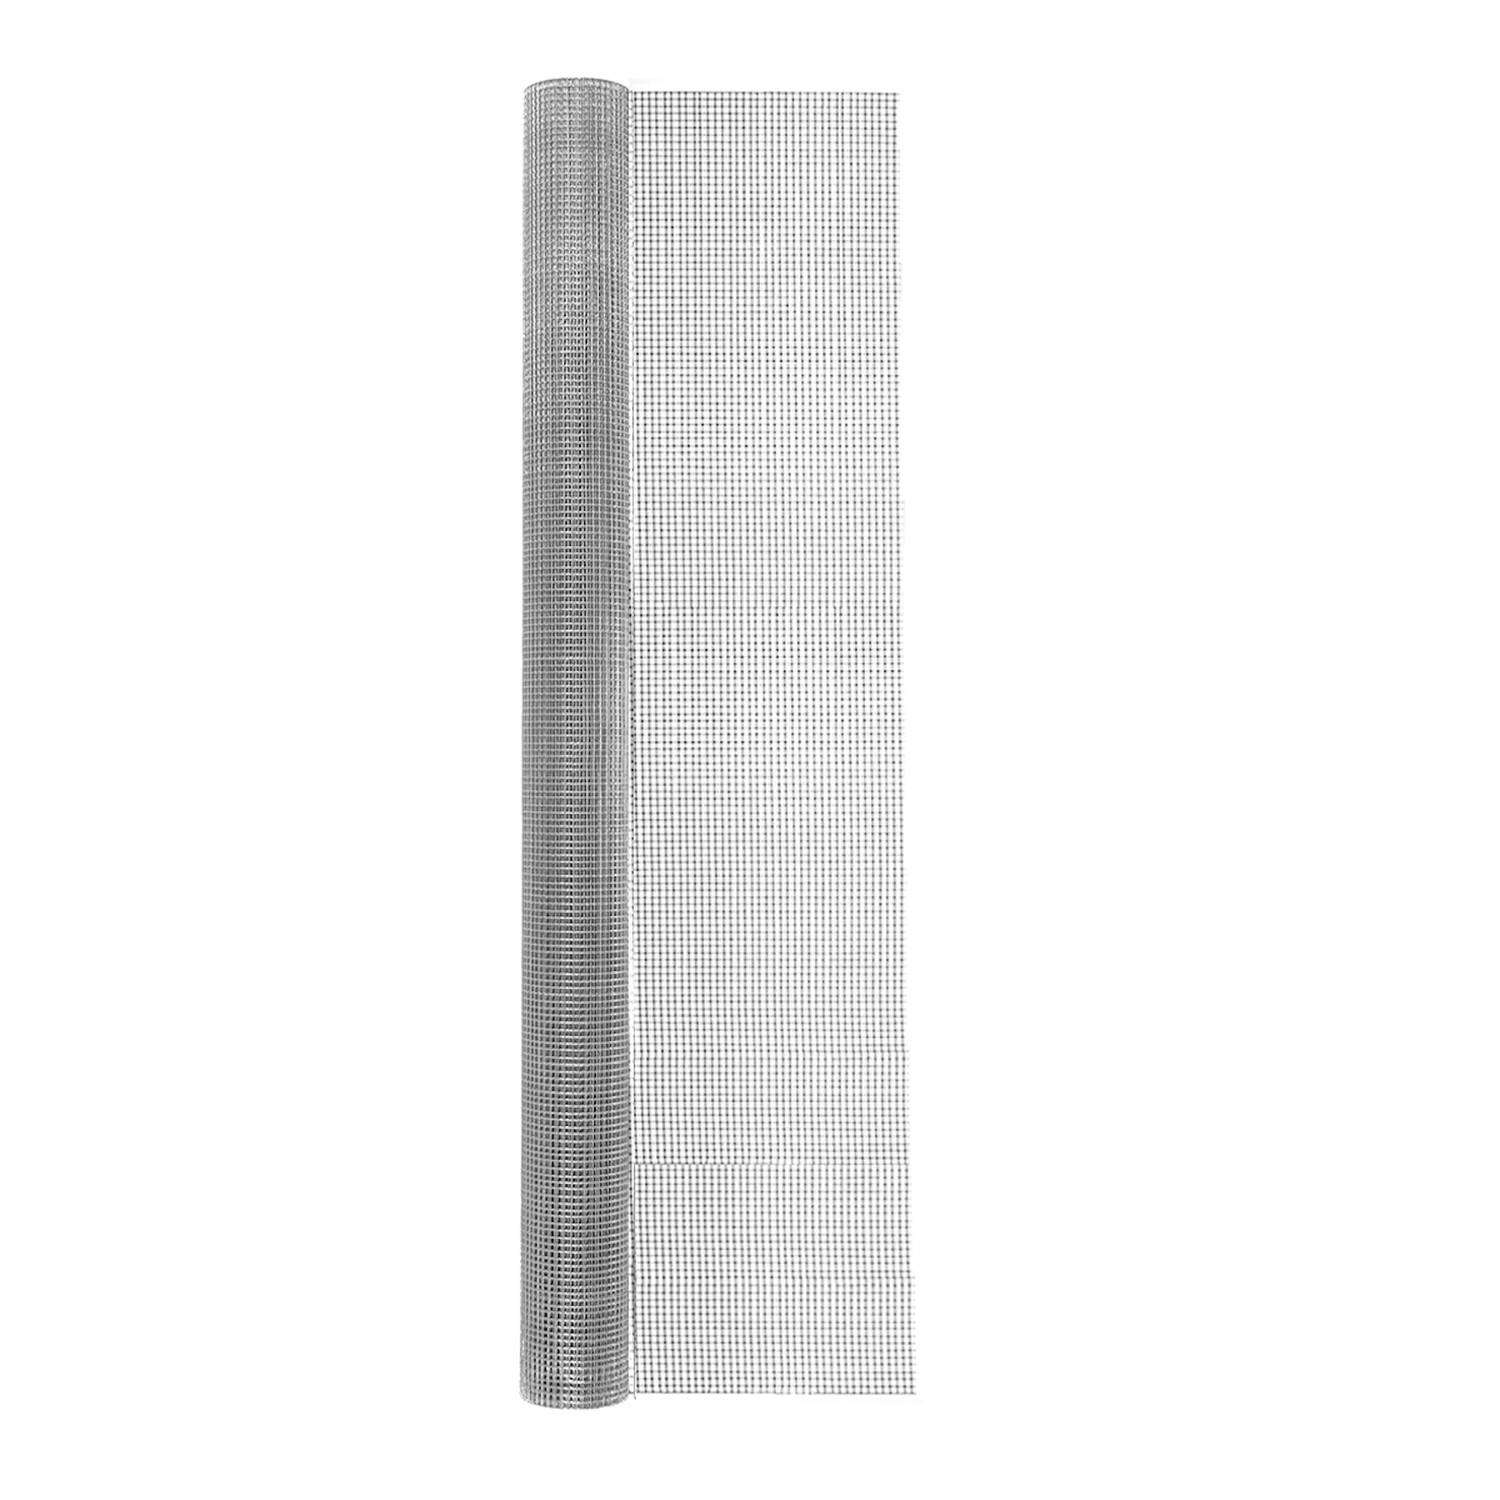 Garden Craft 48 in. W x 25 ft. L Silver 23 Ga. Hardware Cloth Steel